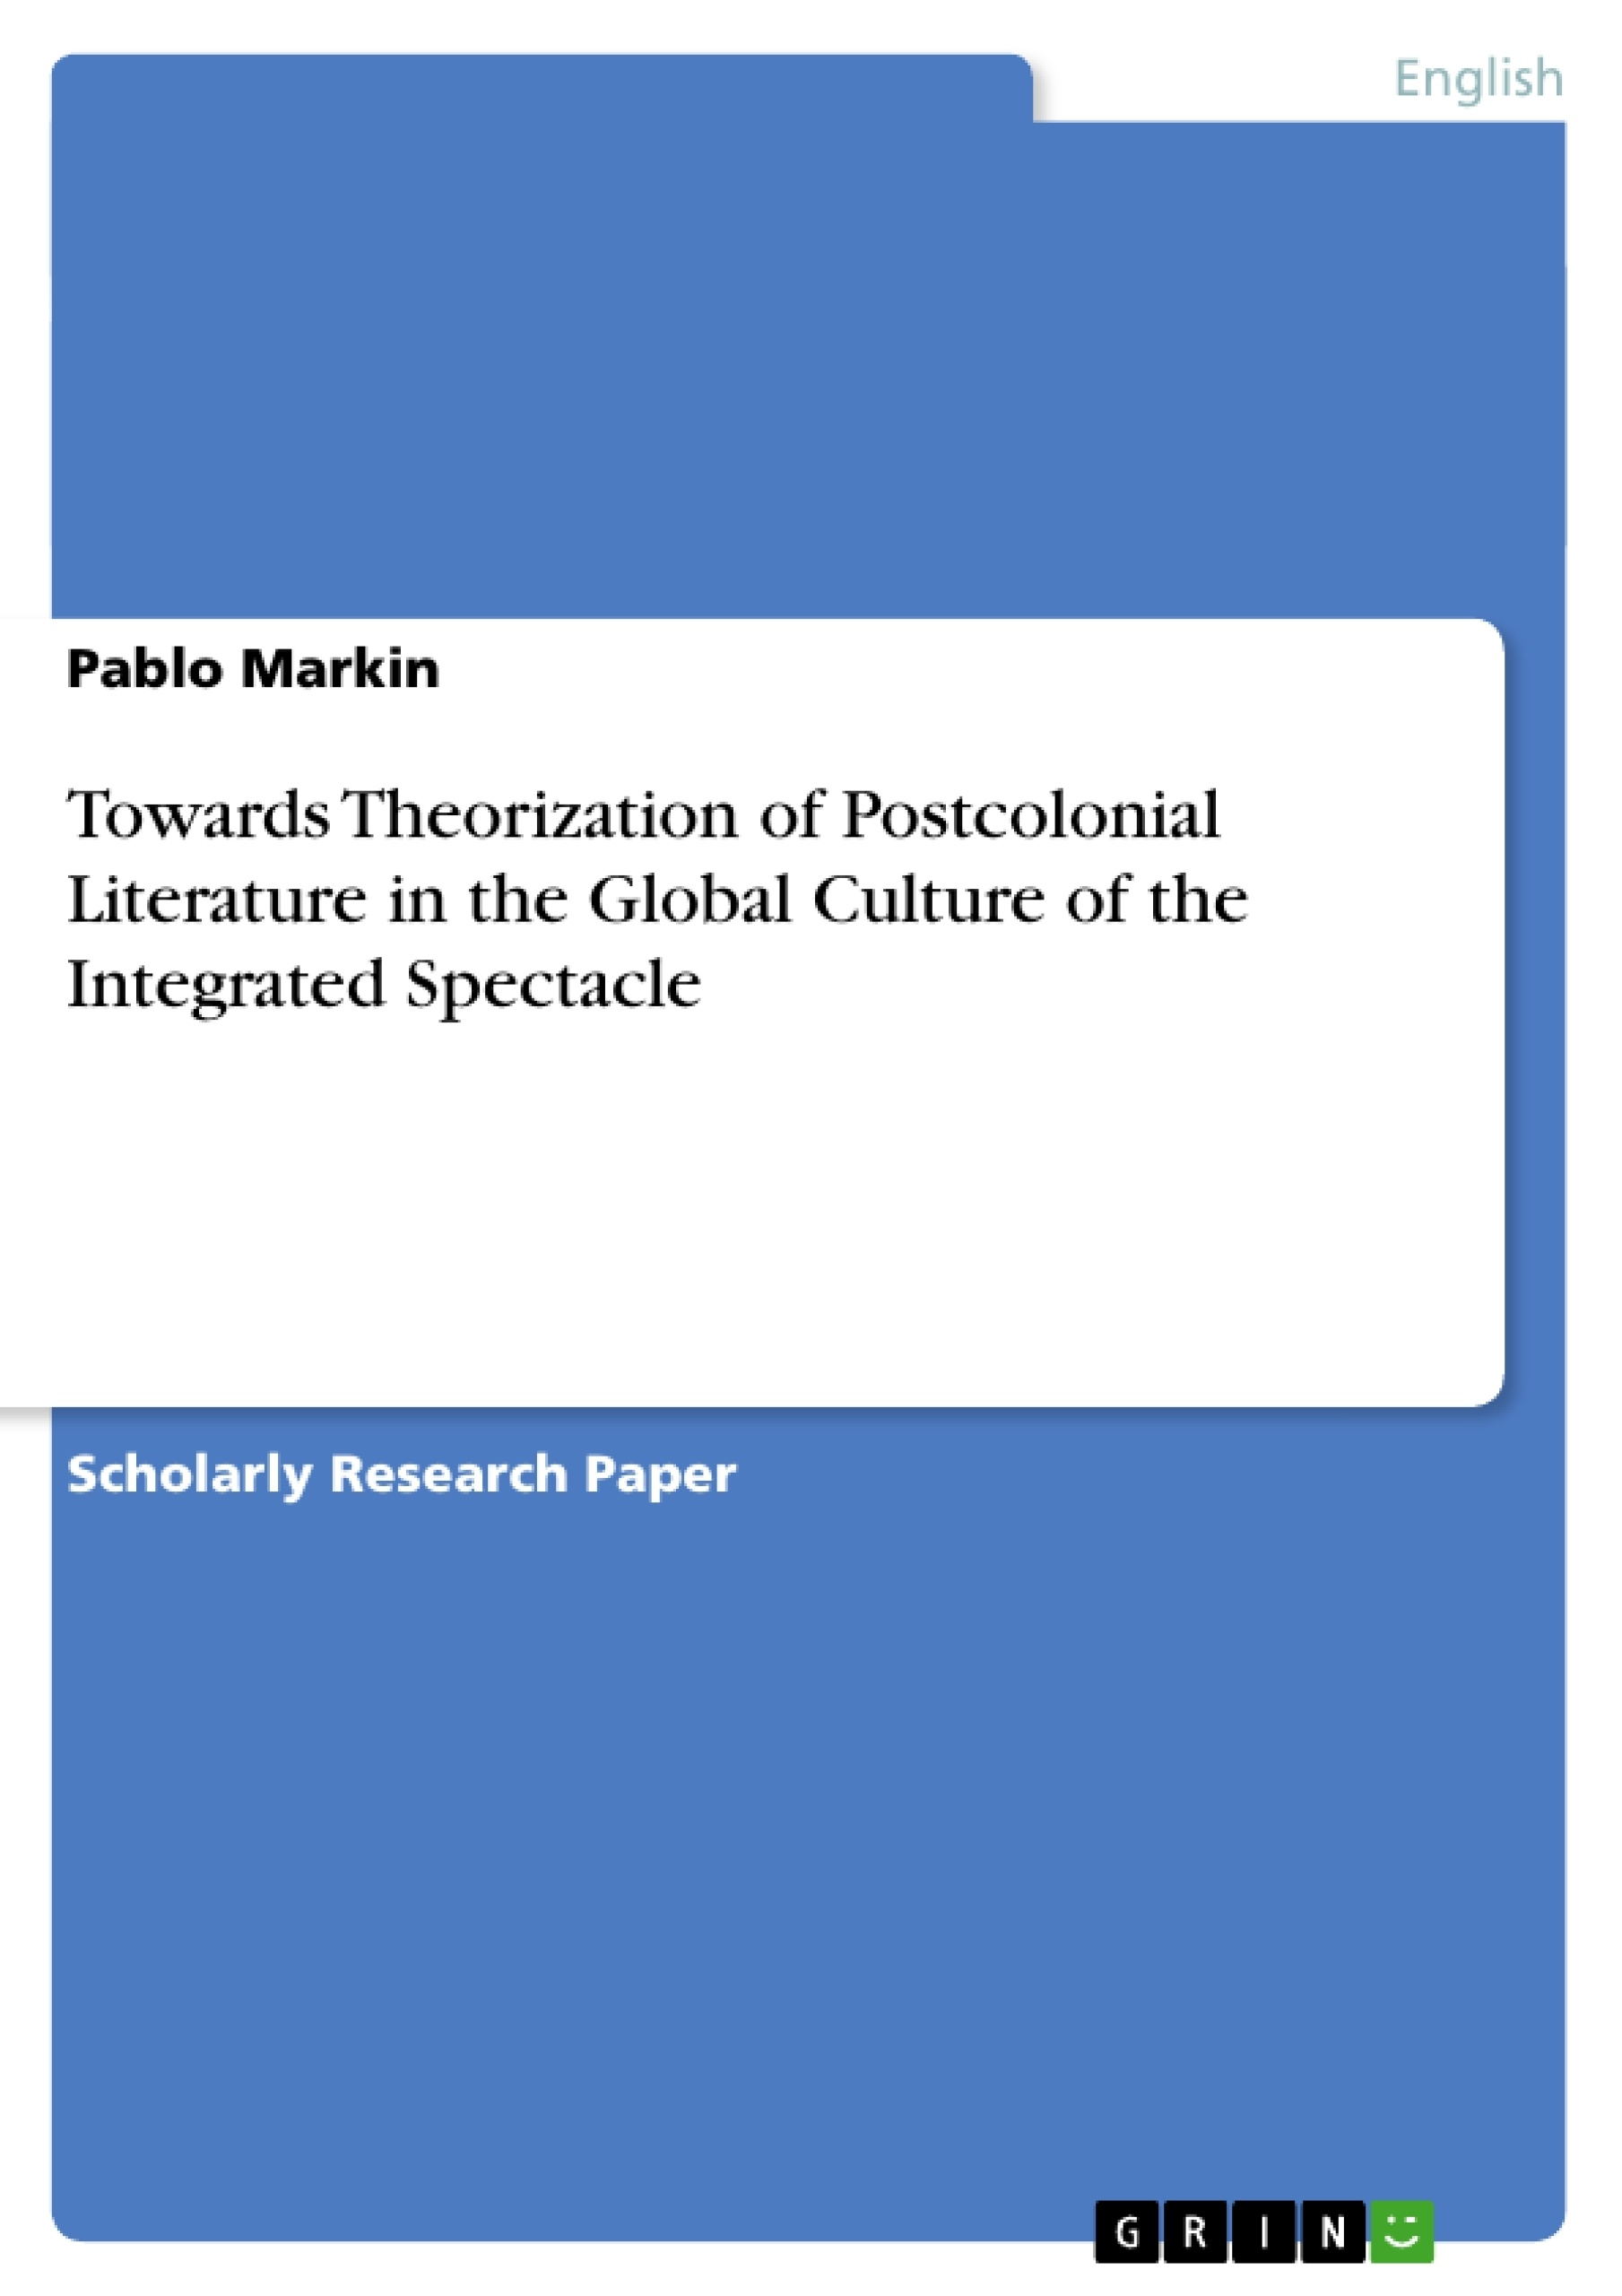 Title: Towards Theorization of Postcolonial Literature in the Global Culture of the Integrated Spectacle